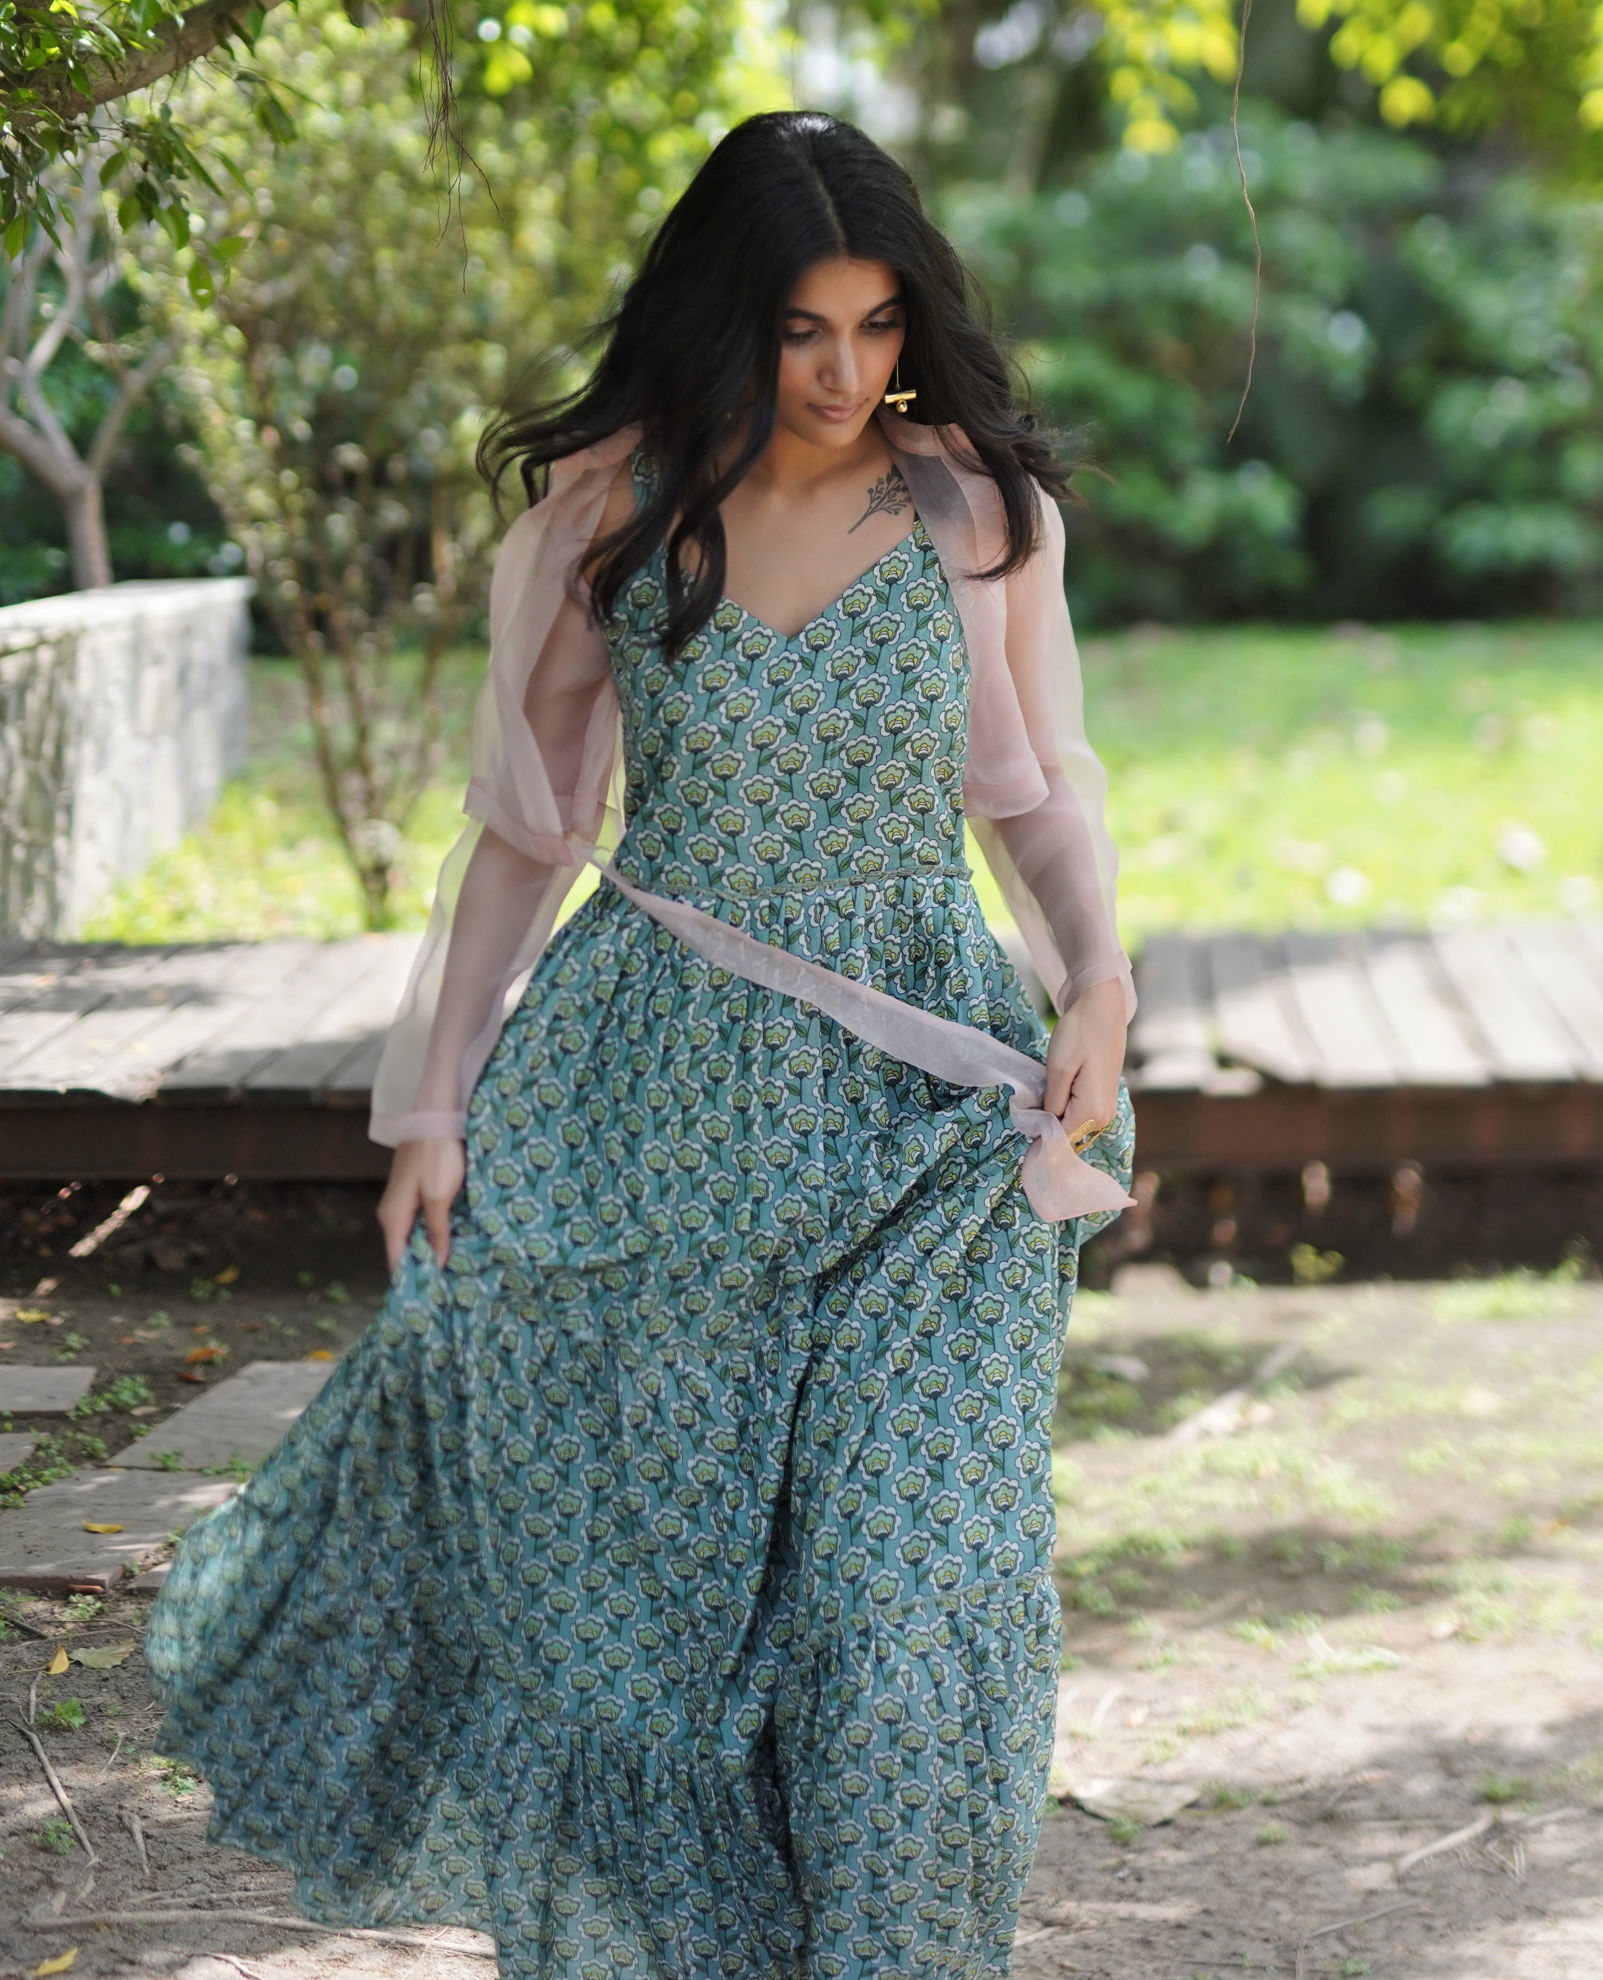 Ciceroni – fashion and lifestyle – shopping – online shopping – parisangam – denims – dresses – maxi-dresses – saree – festive fashion – men's fashion – women's fashion – kidswear